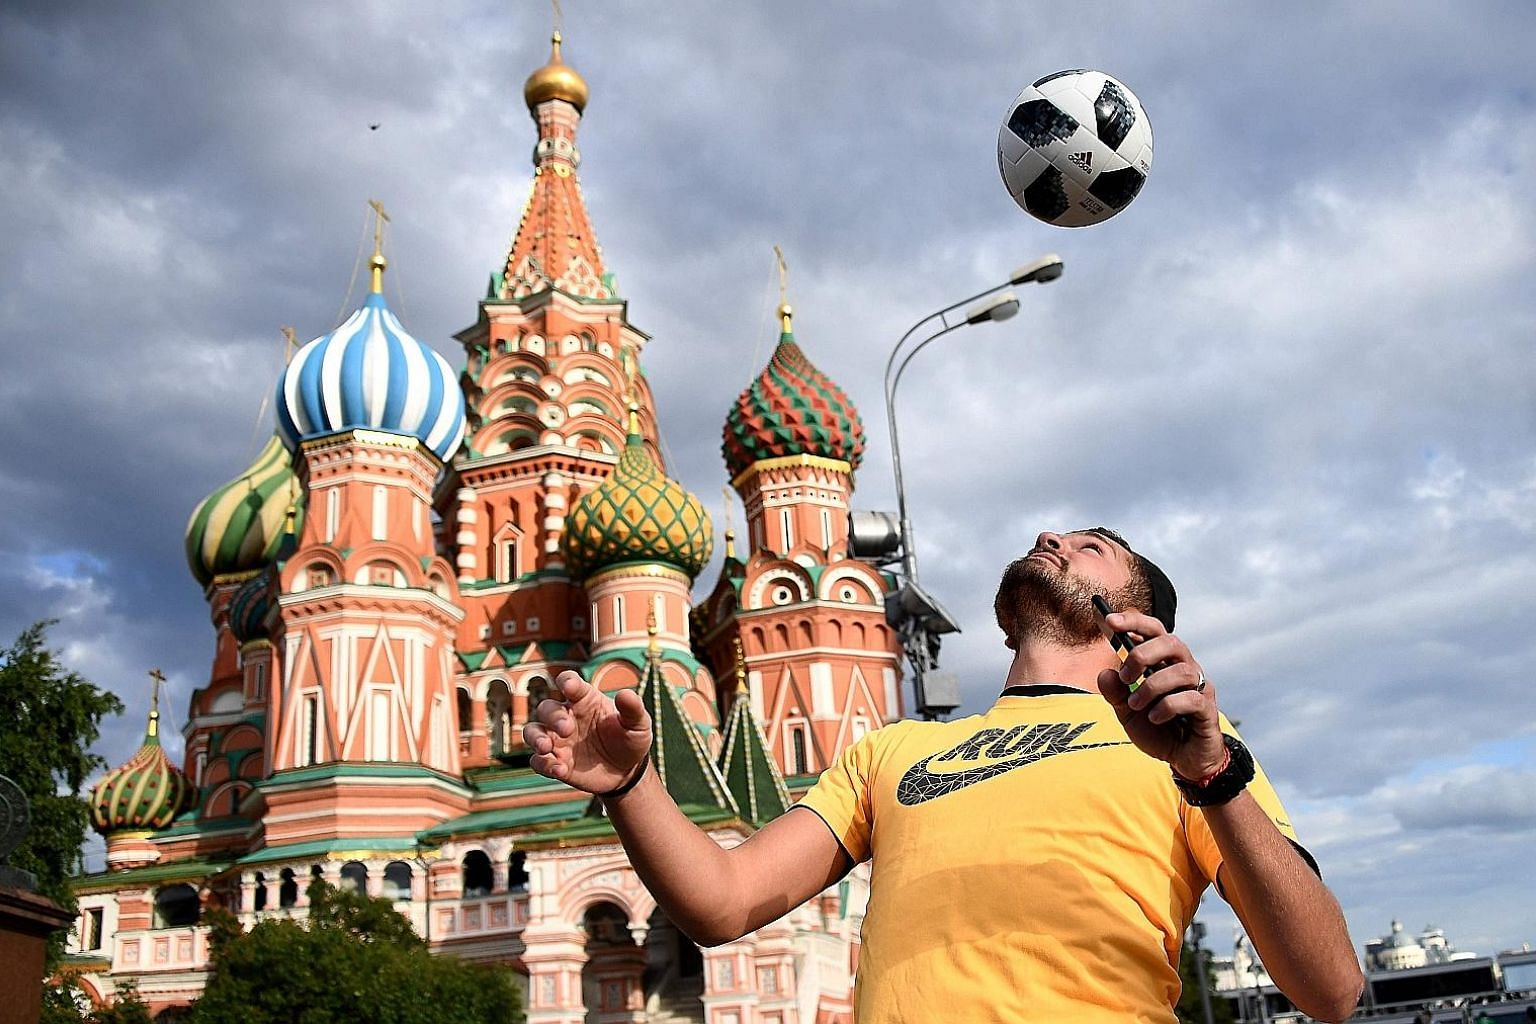 Fears of hooliganism and racism have plagued Russia in recent years. The country is hoping to leverage on a successful staging of the World Cup to improve its image.